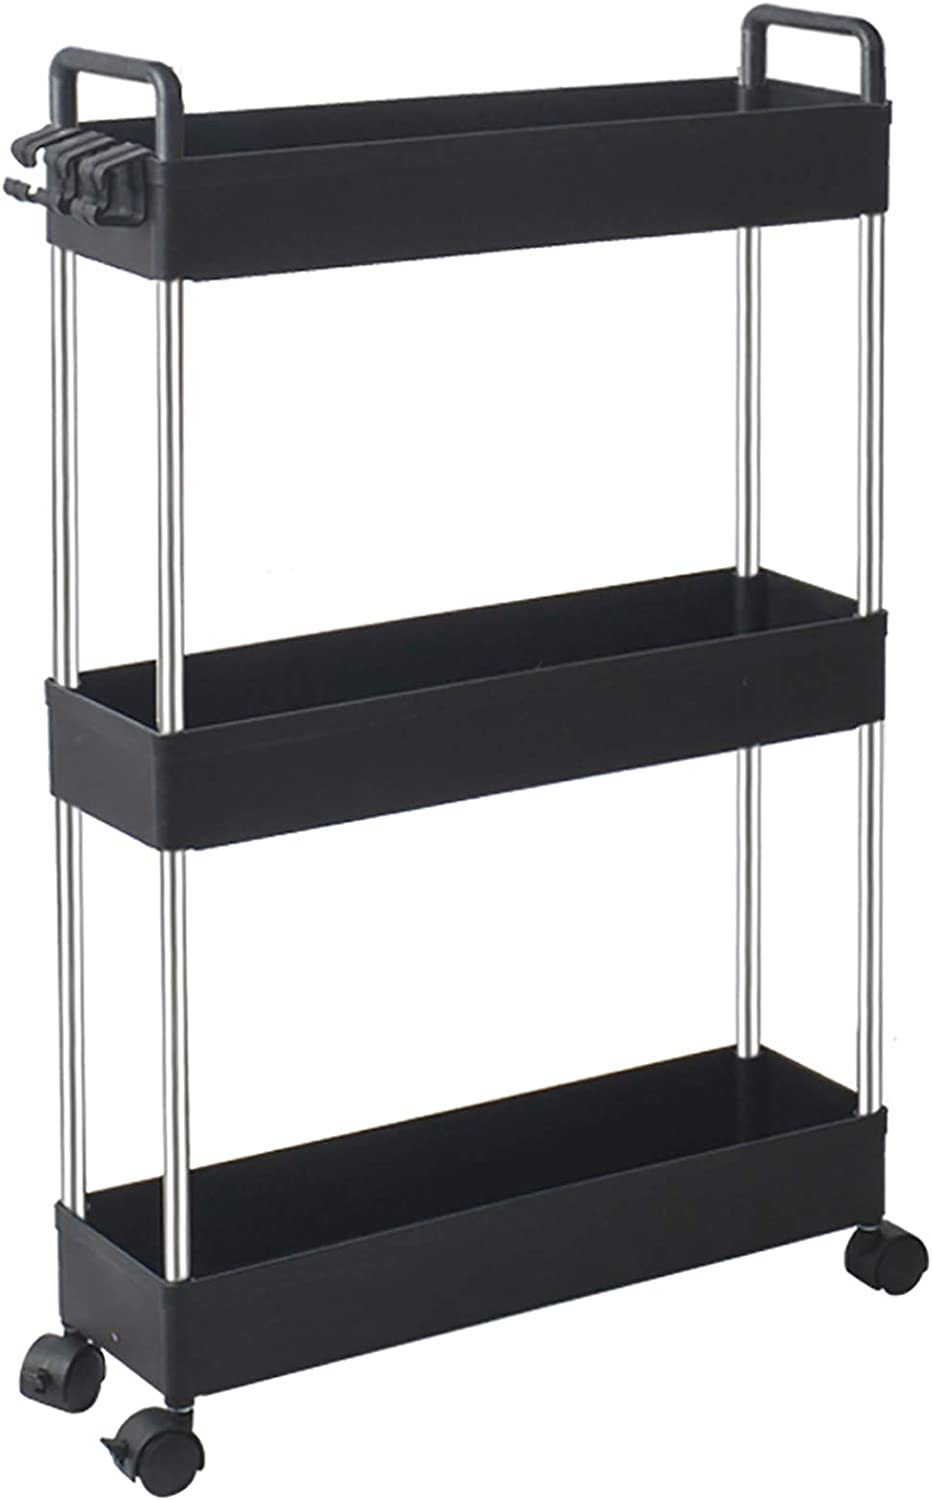 Amazon Com Solejazz Storage Cart 3 Tier Slim Mobile Shelving Unit Rolling Bathroom Carts With Handle For Kitchen Bathroom Laundry Room Narrow Places Black Kitchen Dining